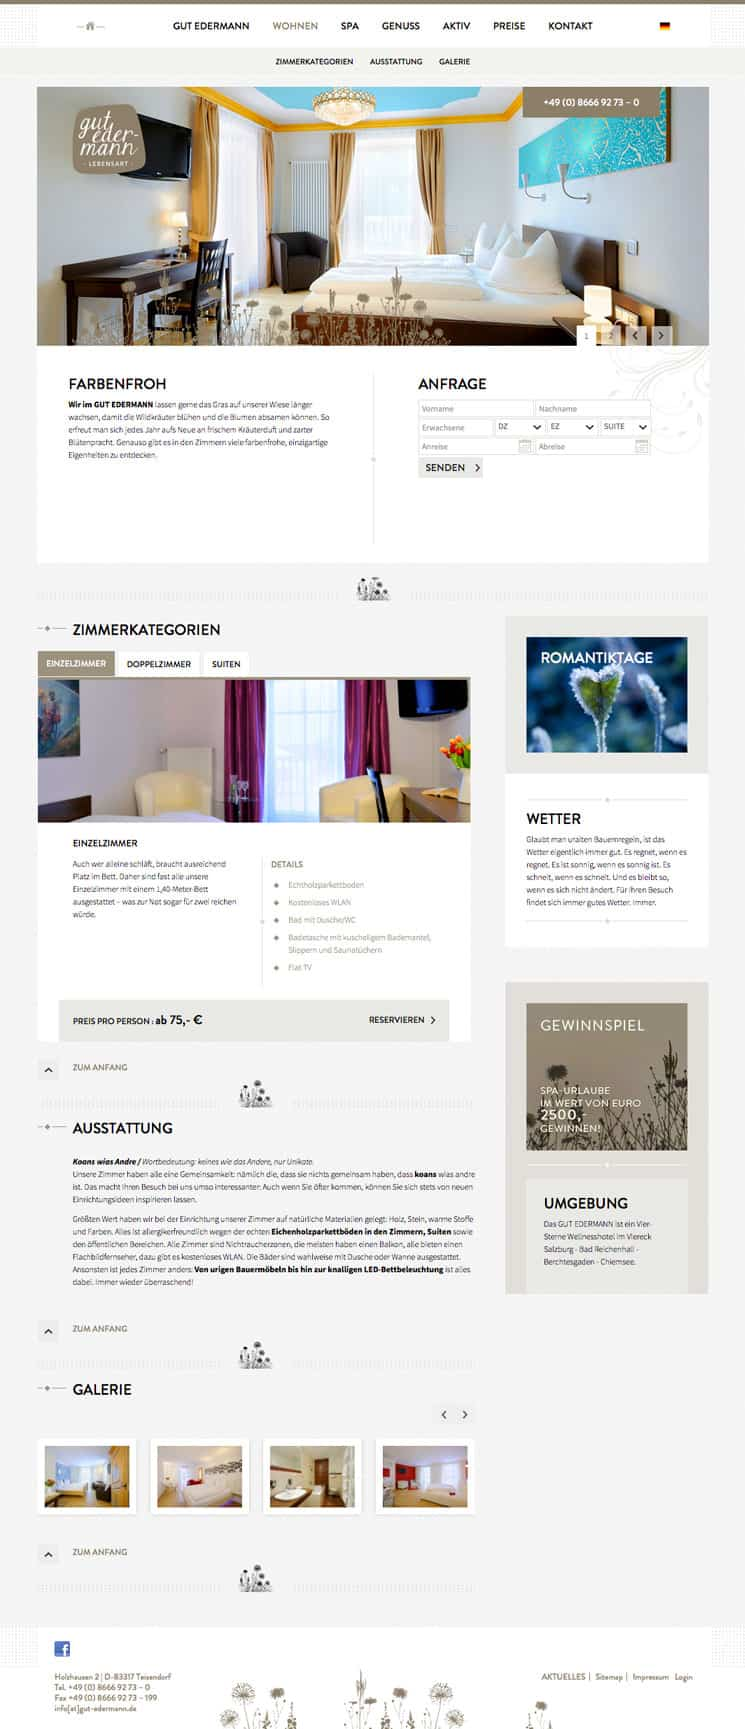 Gut Edermann Webdesign